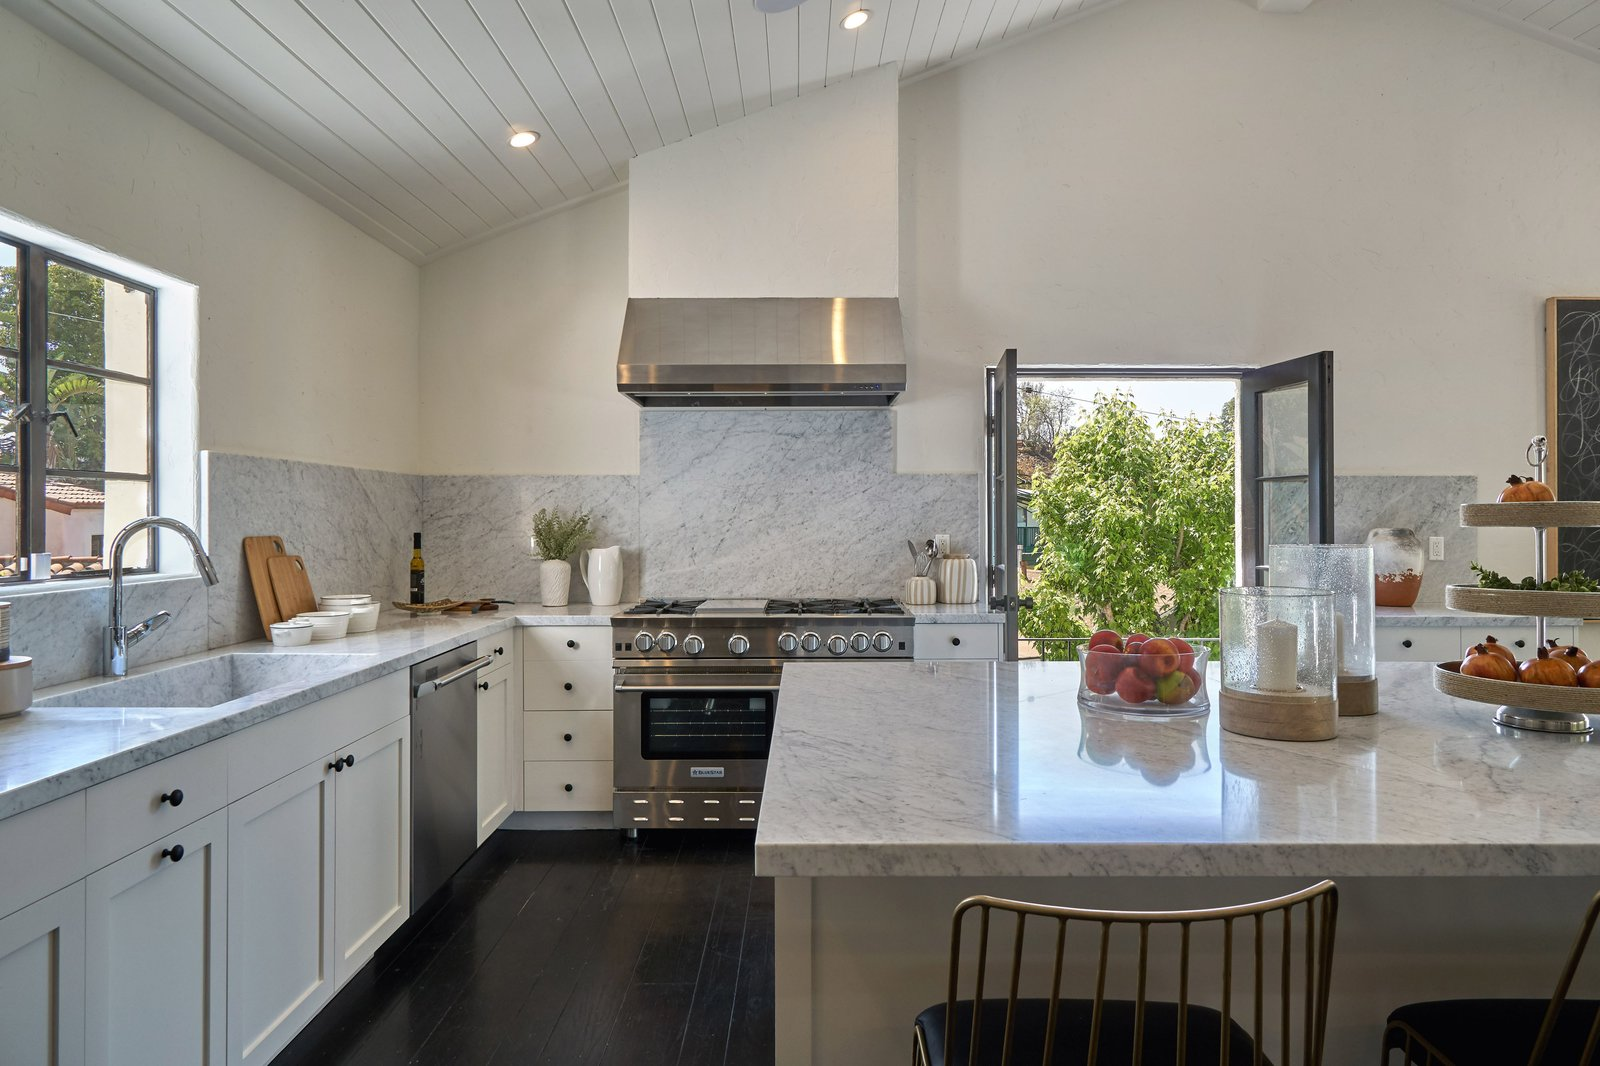 Kitchen, Ceiling, Dark Hardwood, Marble, White, Recessed, Range Hood, Vessel, Marble, Dishwasher, and Range The kitchen.  Best Kitchen Range Ceiling White Marble Dark Hardwood Photos from Snatch Up James Dean's Former Hollywood Home For $4M